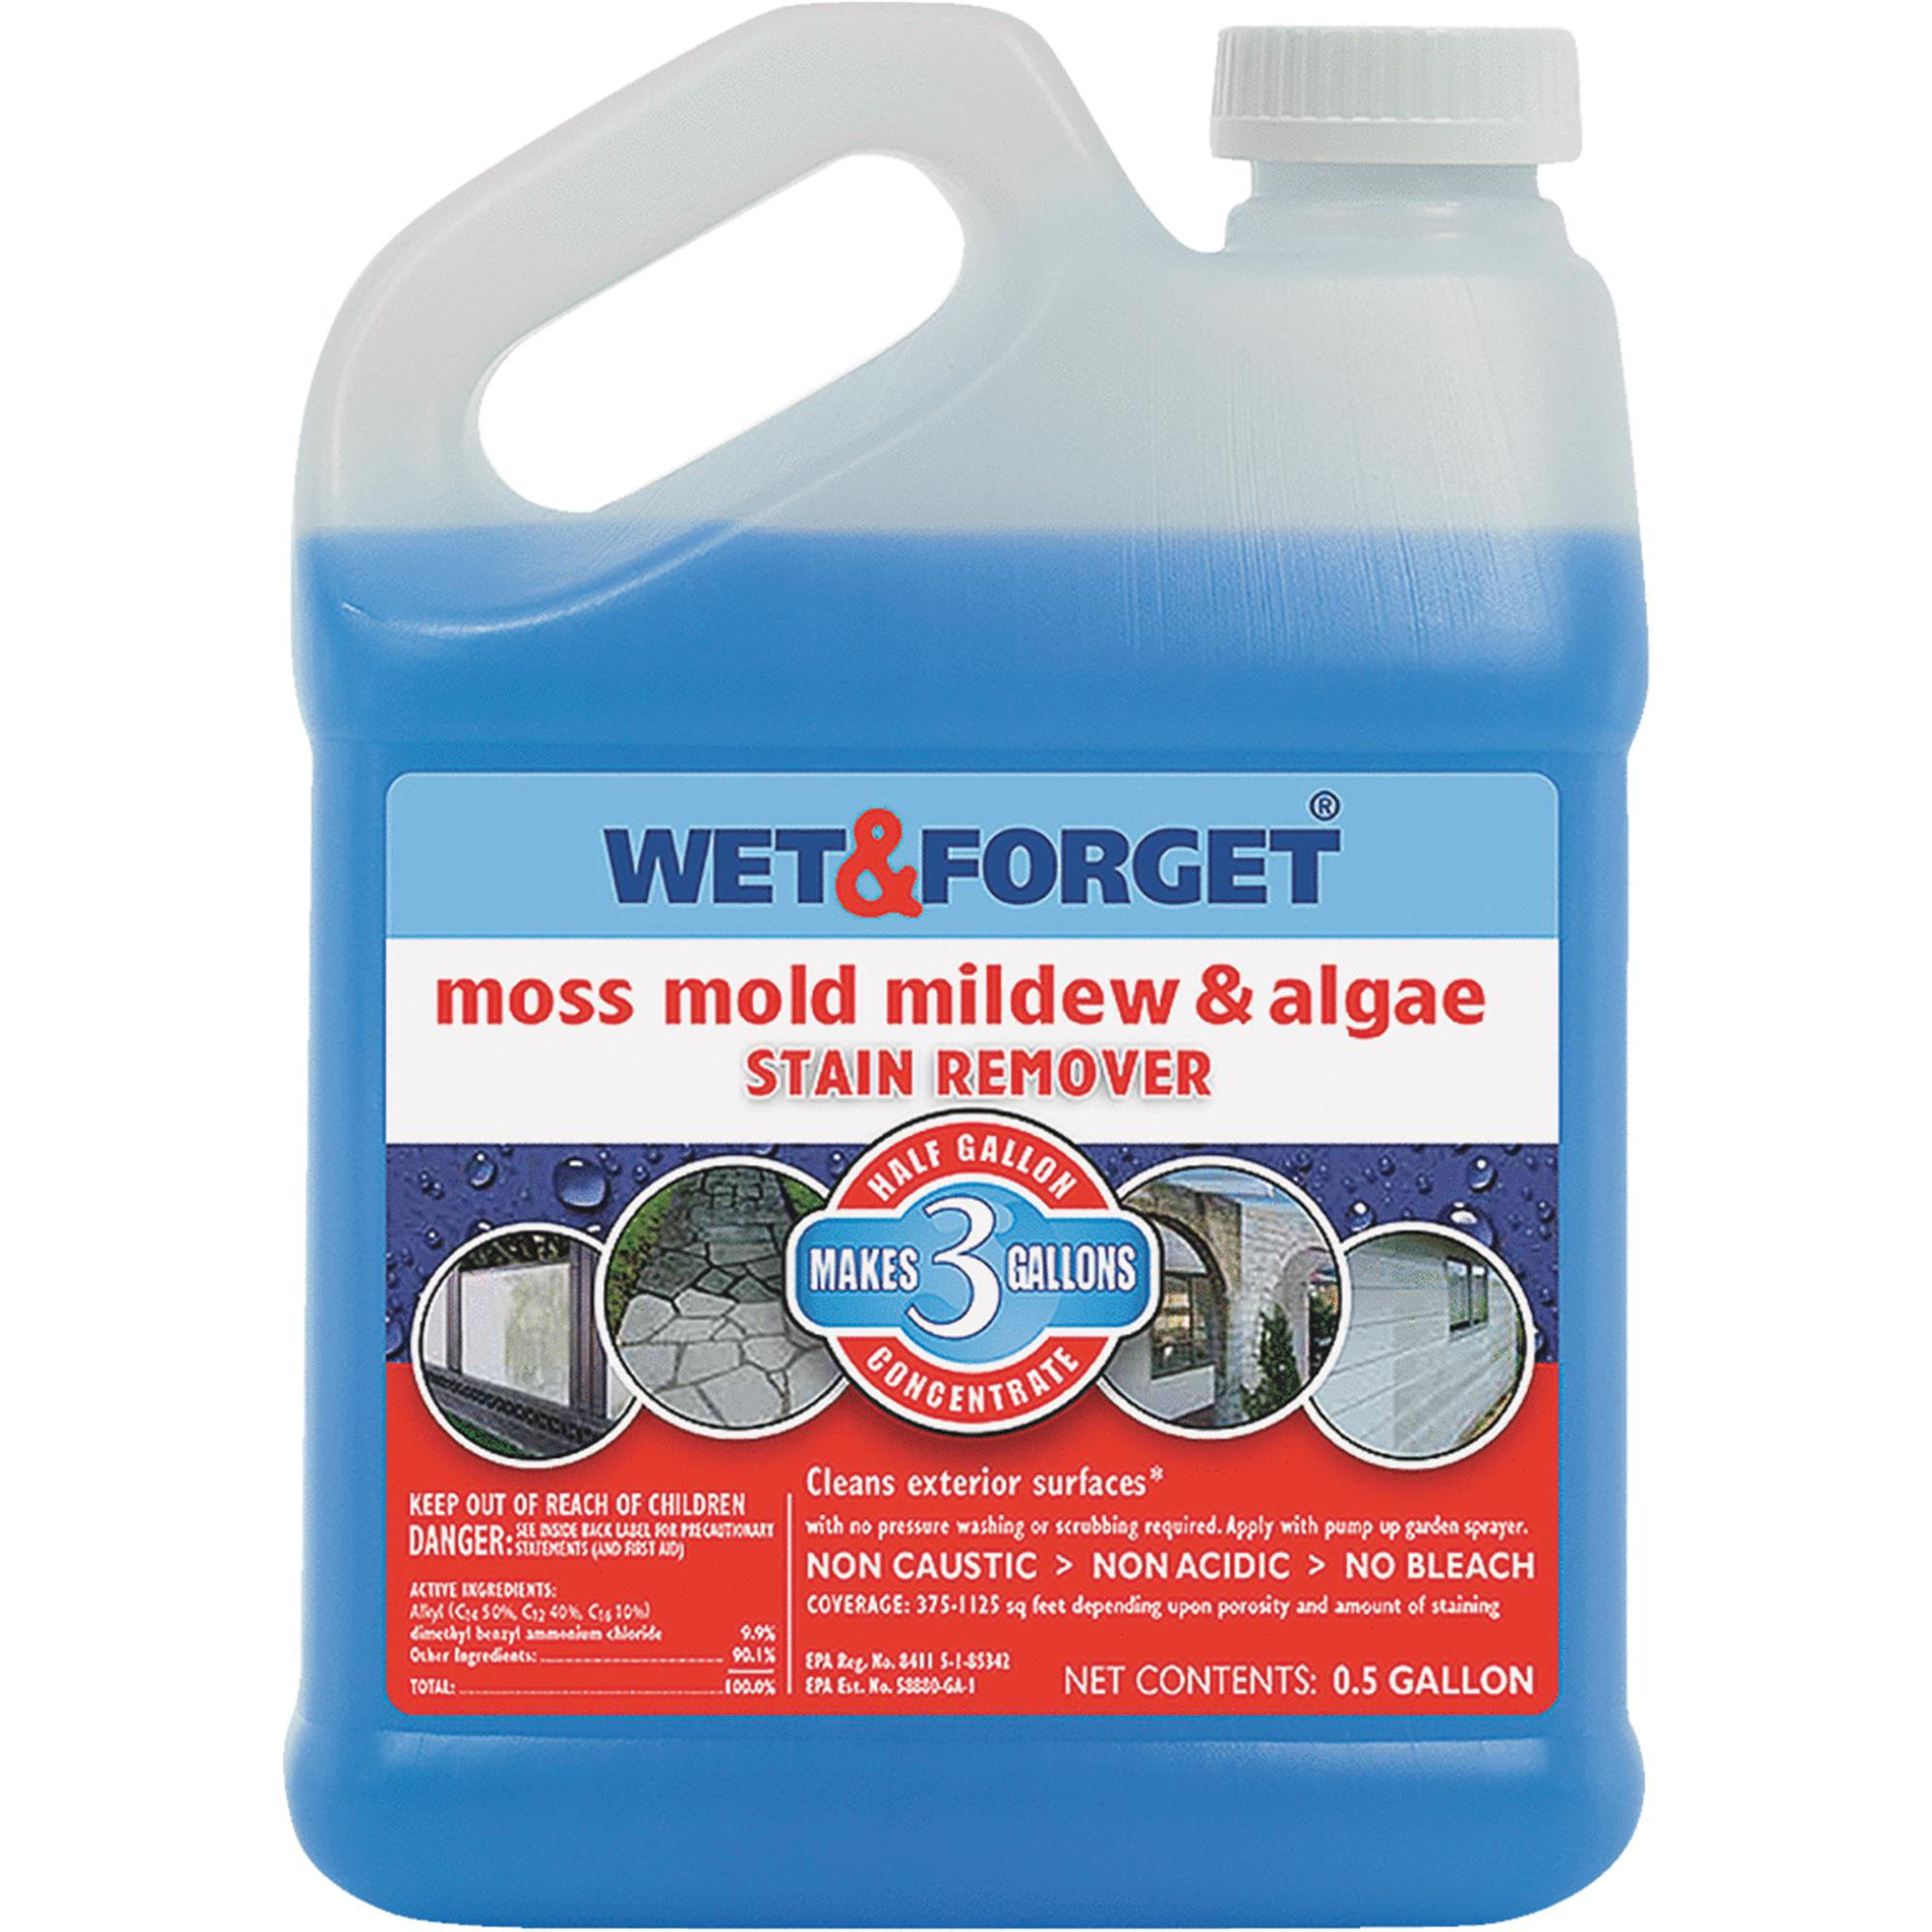 Wet & Forget Moss, Mold, Mildew & Algae Stain Remover